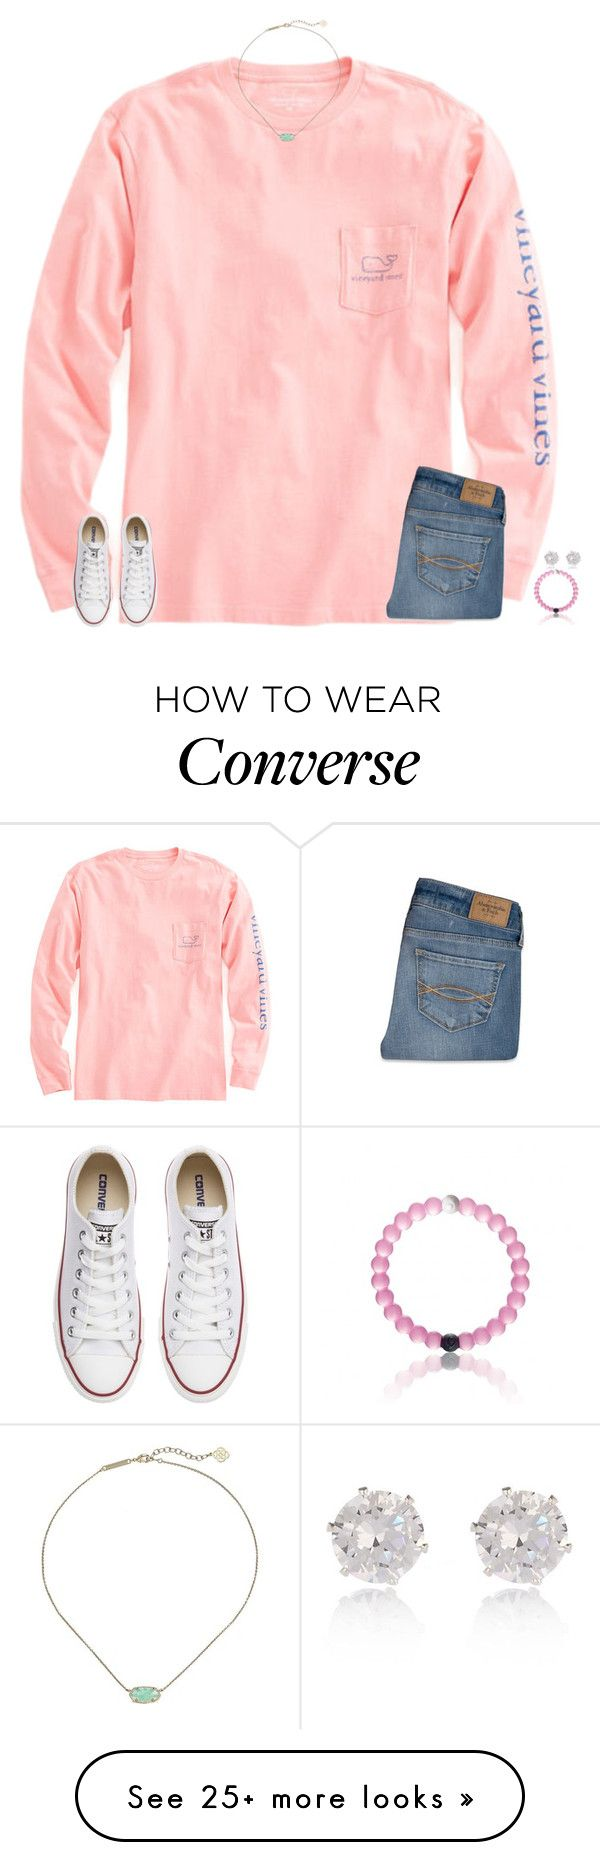 """ootd"" by secfashion13 on Polyvore featuring Vineyard Vines, Abercrombie & Fitch, Converse, Kendra Scott, River Island, women's clothing, women's fashion, women, female and woman"